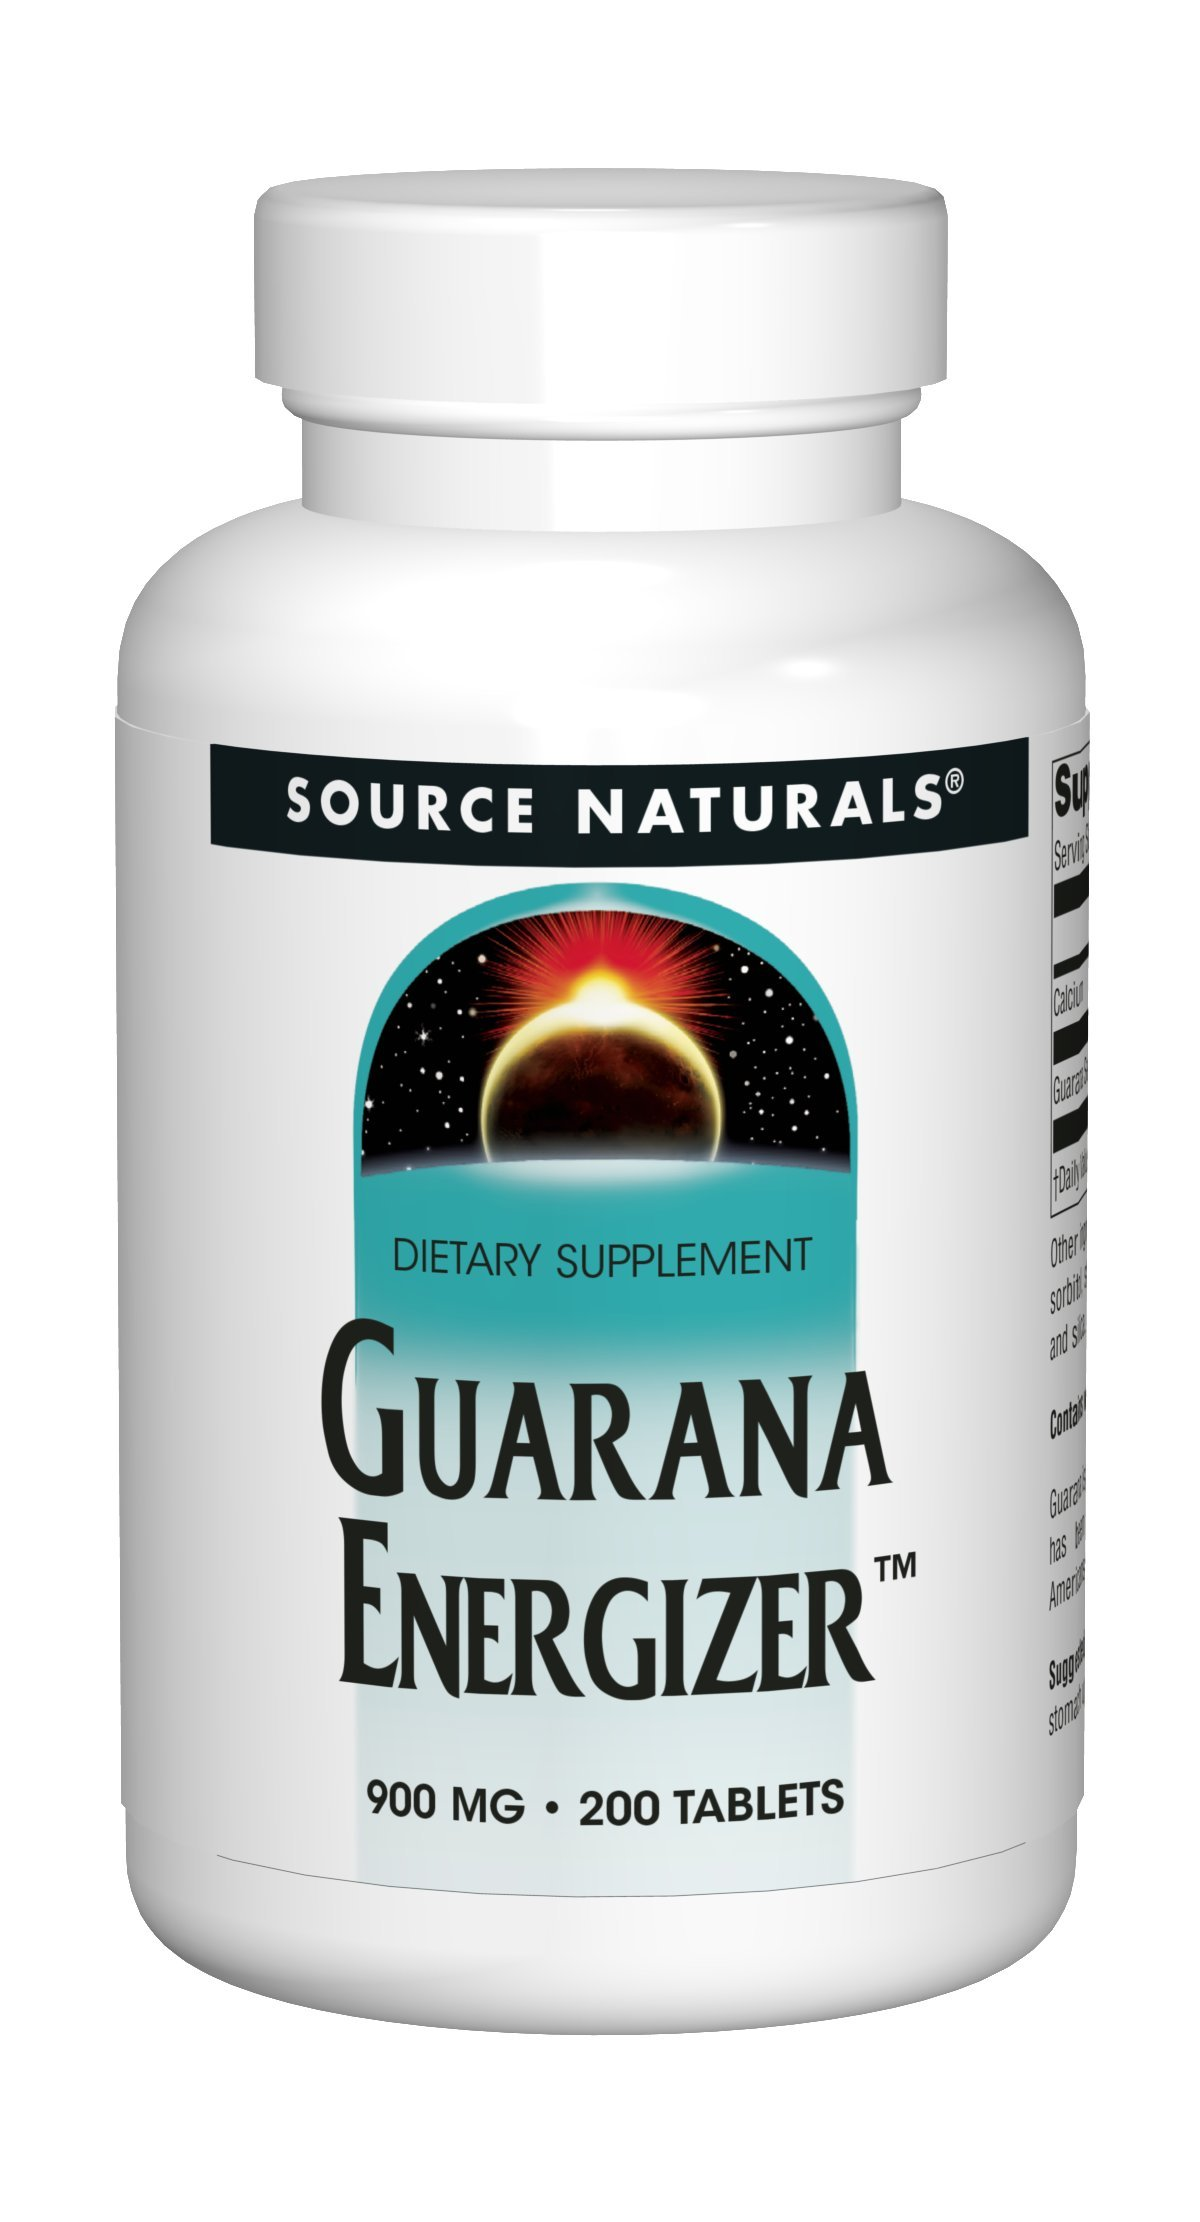 Source Naturals Guarana Energizer 900mg Pure Brazilian Herbal Caffeine Supplement - Natural, Slow Release Of Steady Energy - With Calcium - 200 Tablets